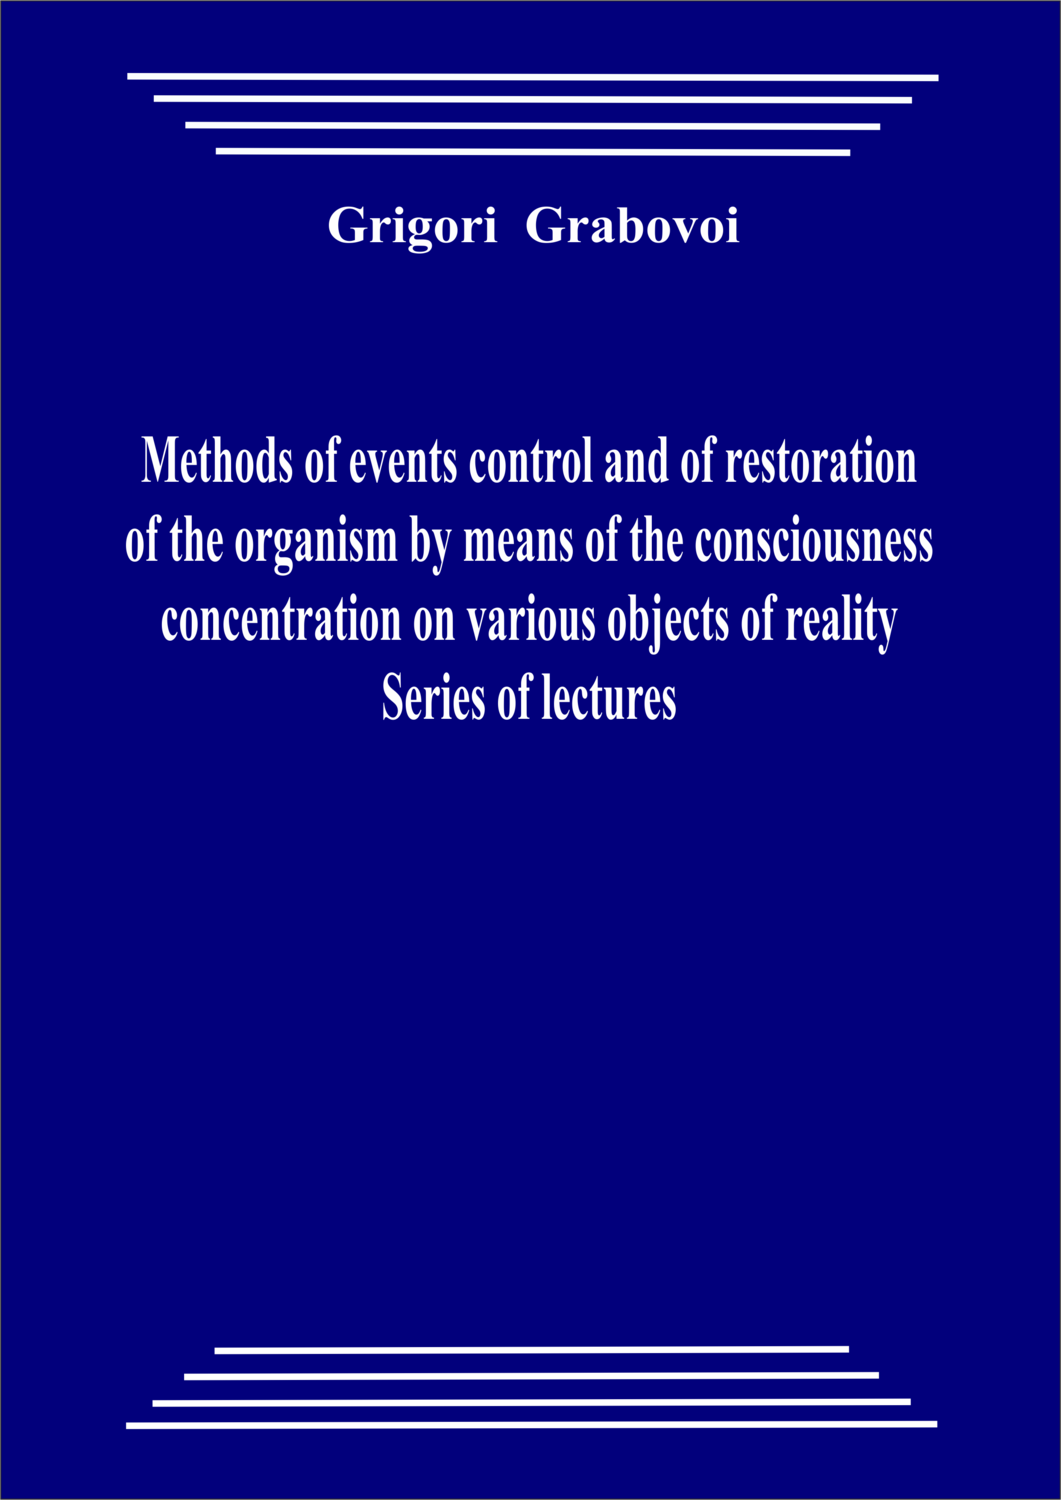 Methods of events control and of restoration of the organism